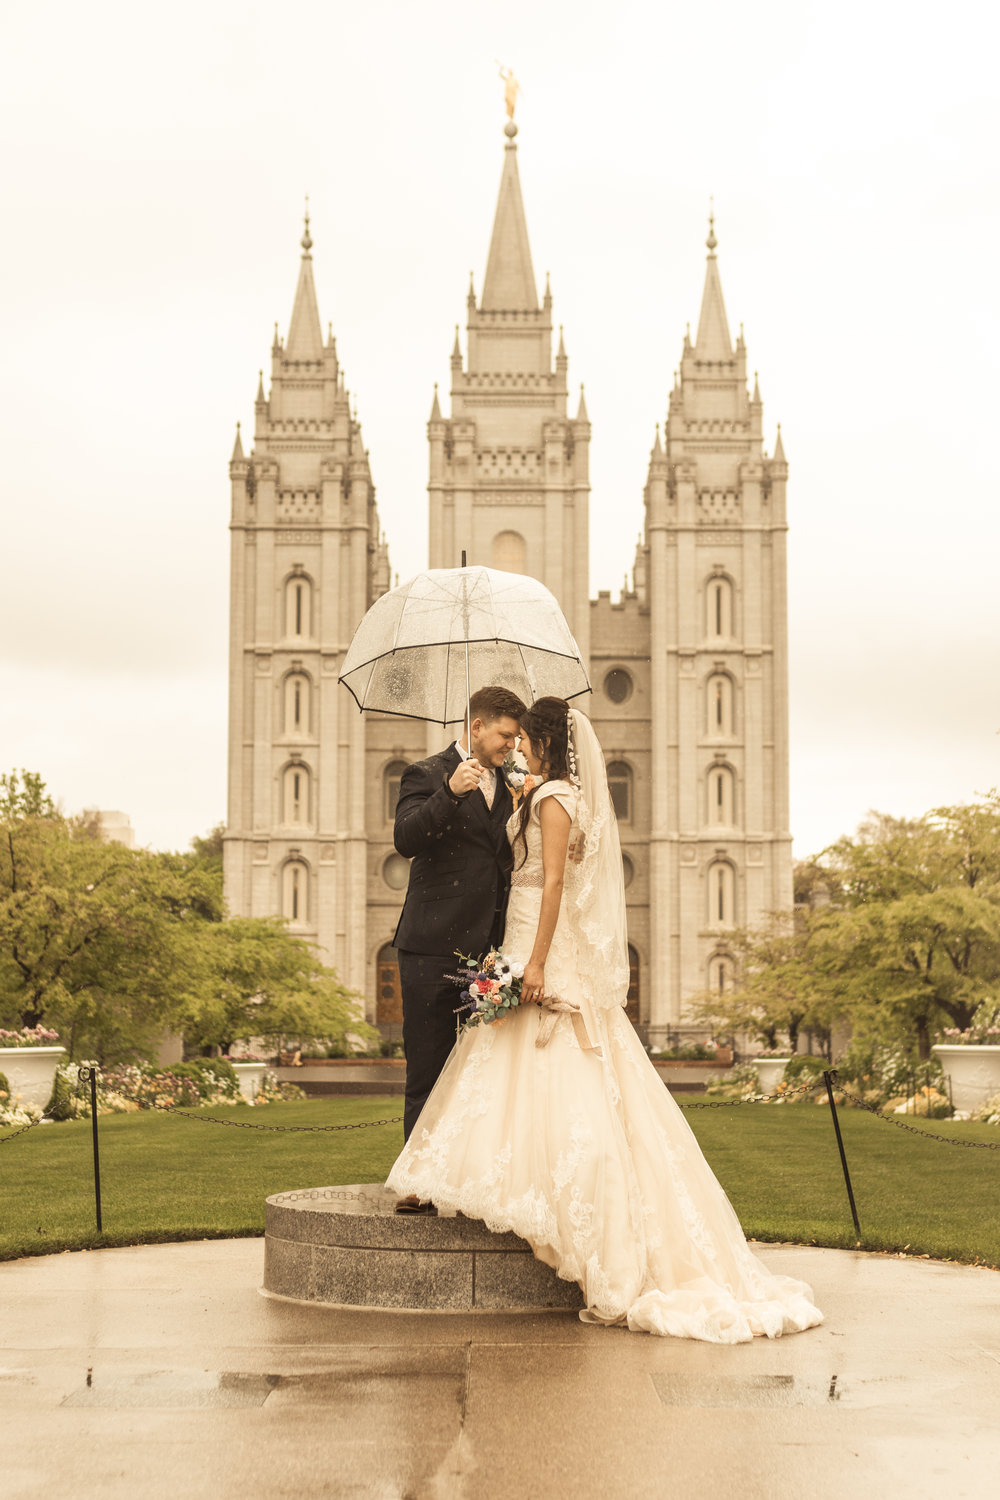 Rainy Spring Wedding at the Salt Lake Templeby Bri Bergman Photography03.JPG